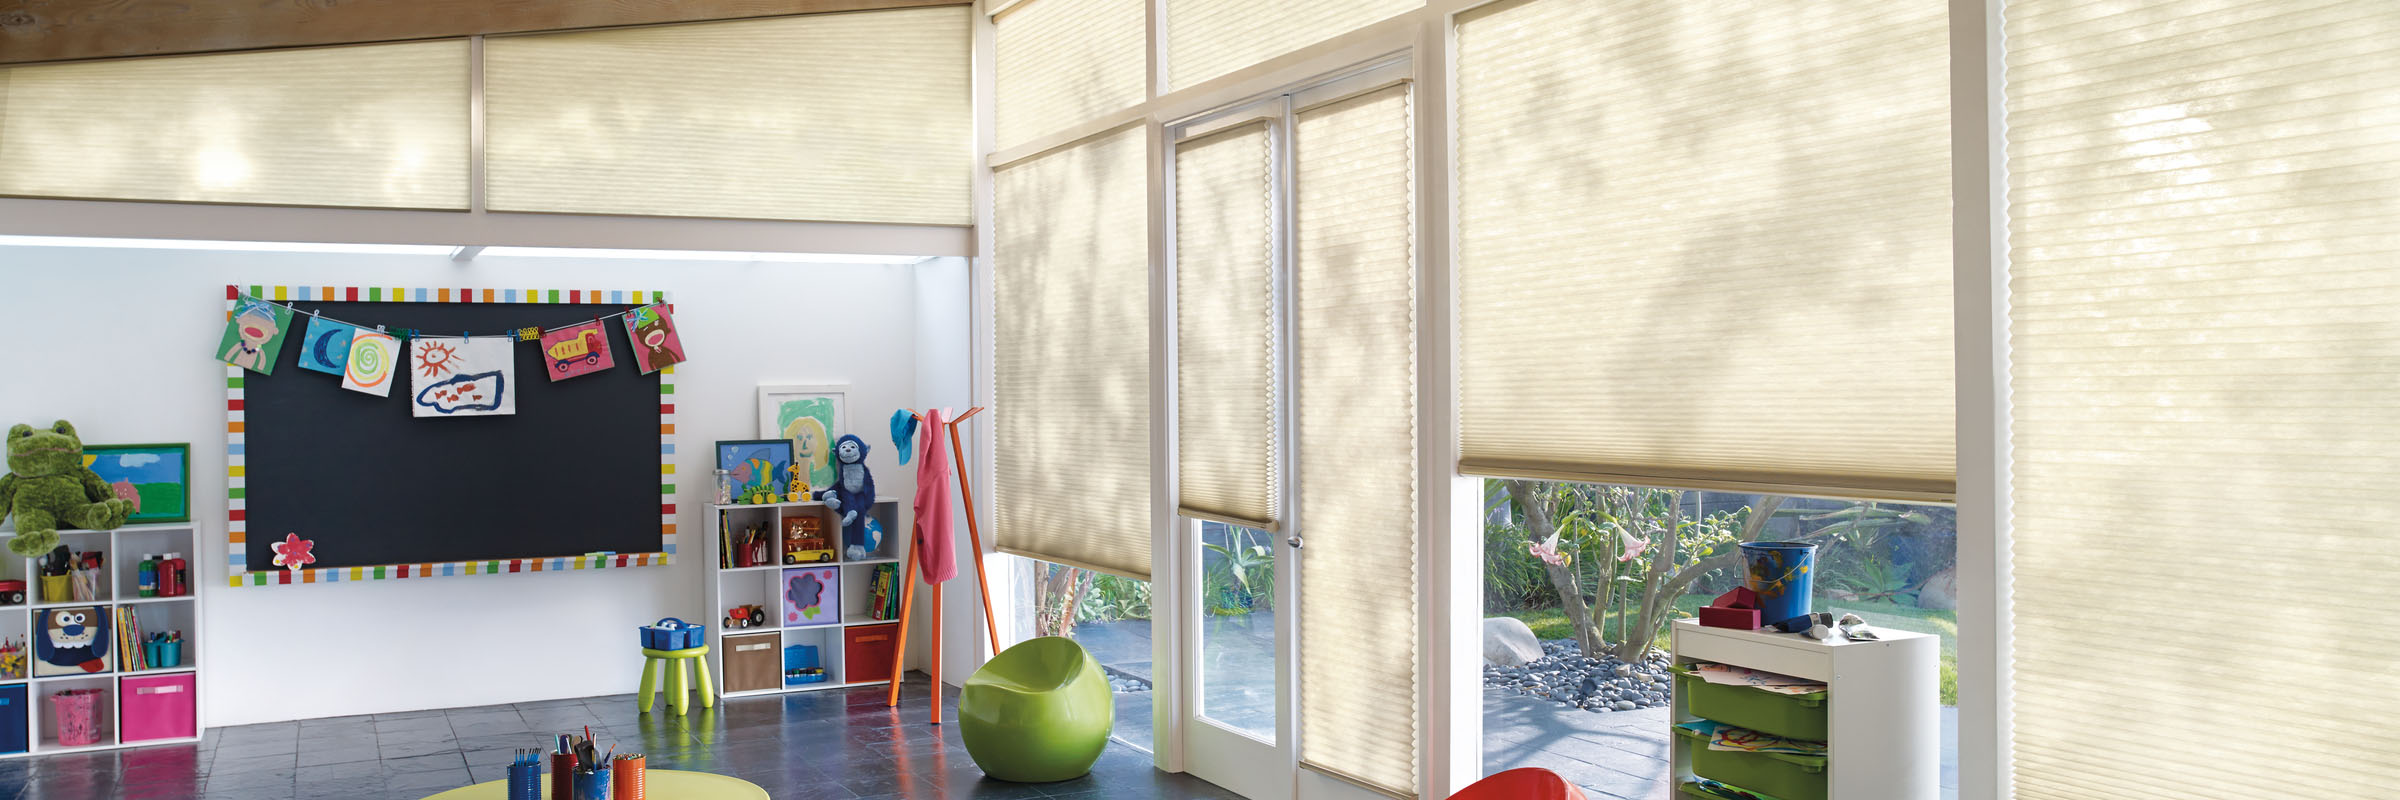 Cellular blinds in LifeScape Sand Swept - Applause